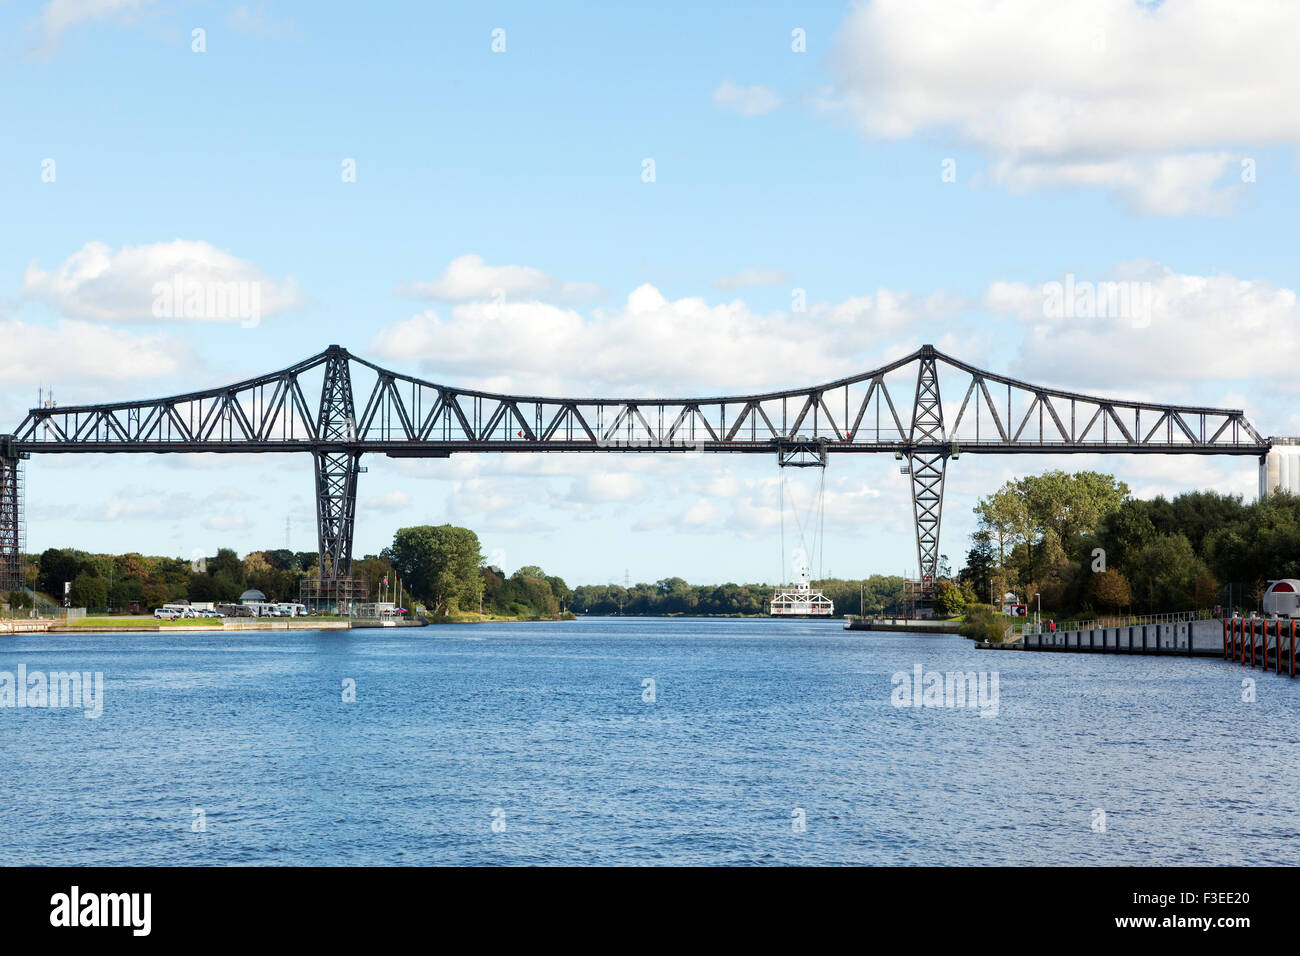 Rendsburg High Bridge with its suspension ferry across the Kiel Canal - Stock Image